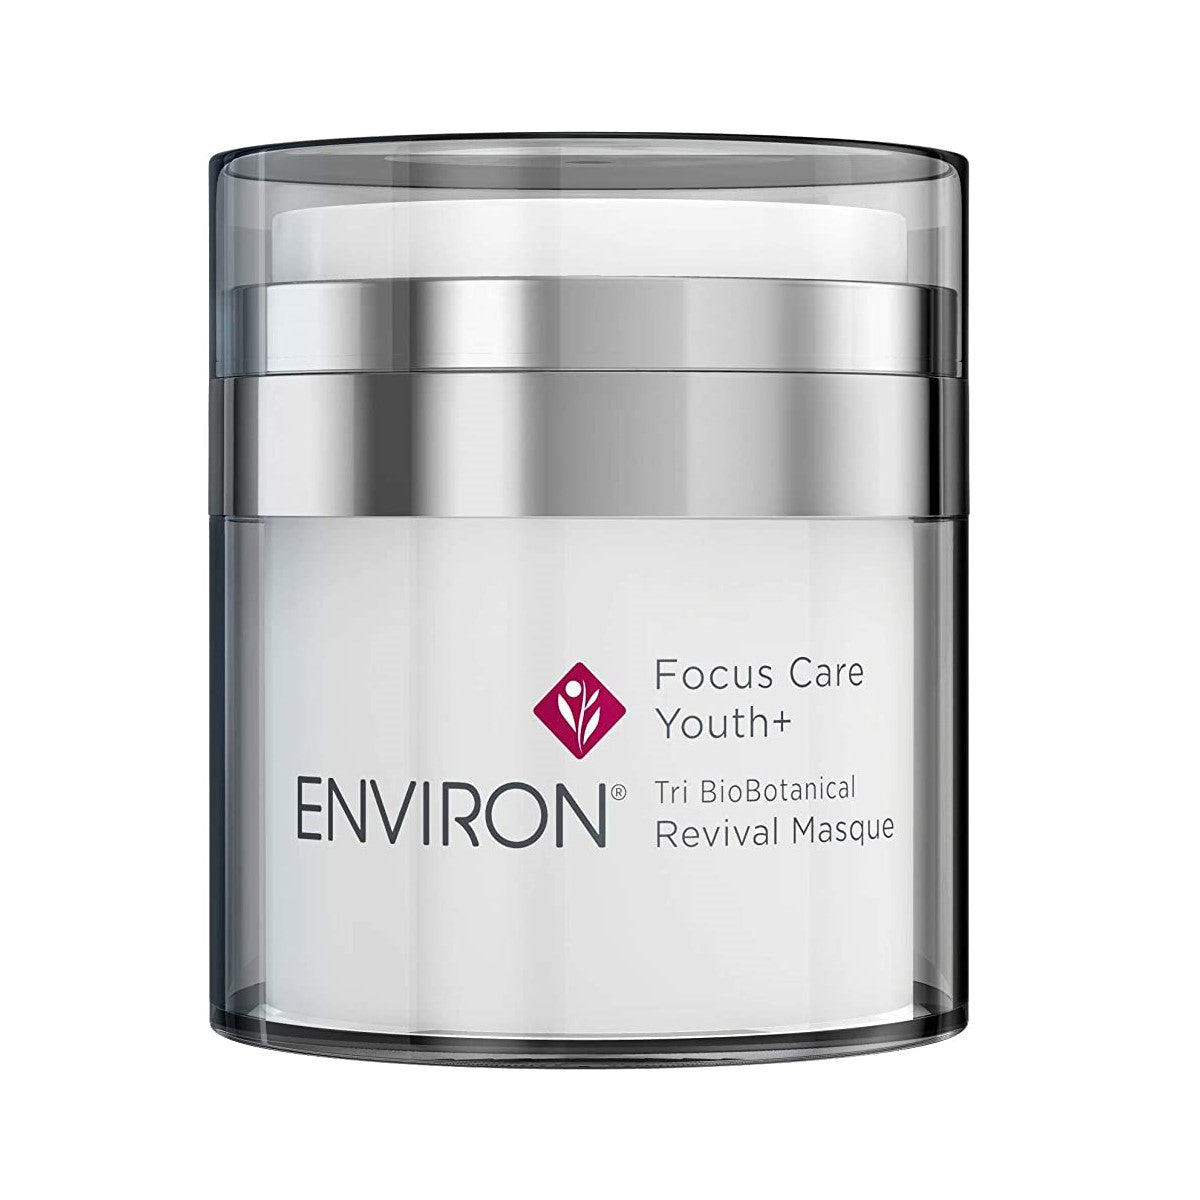 Environ - Tri Biobotanical Revival Masque